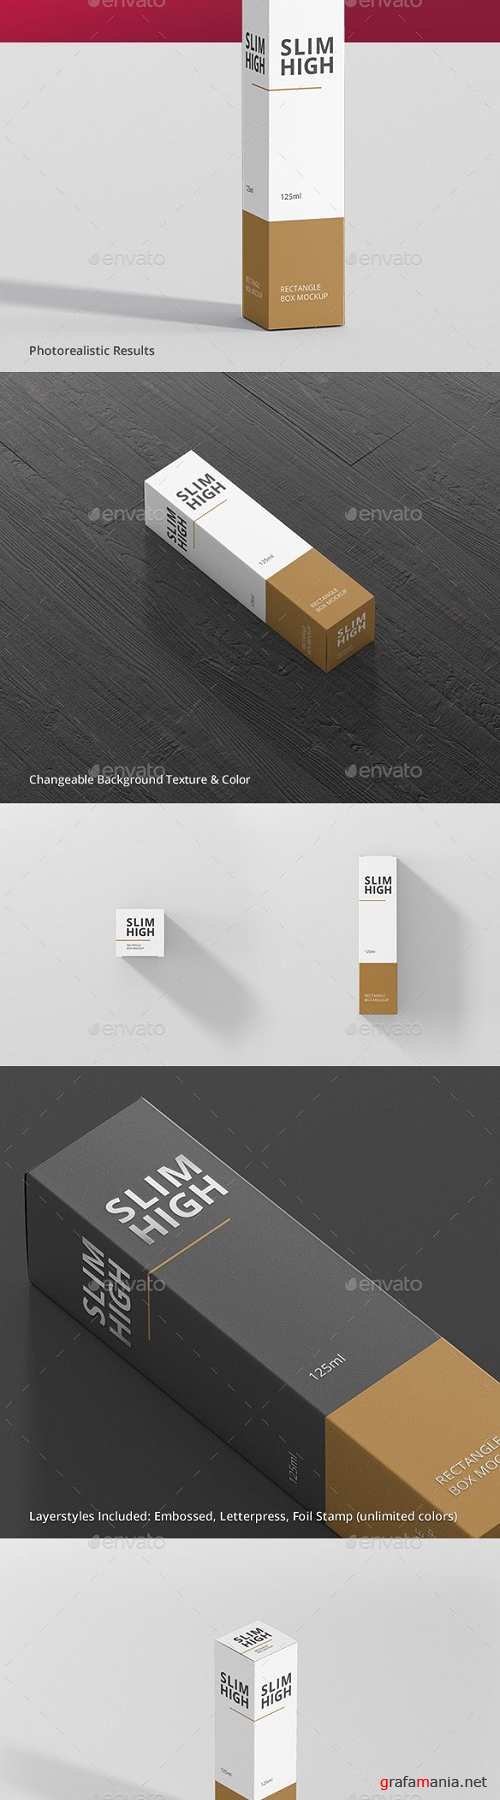 Box Mockup - Slim High Rectangle - 19302639